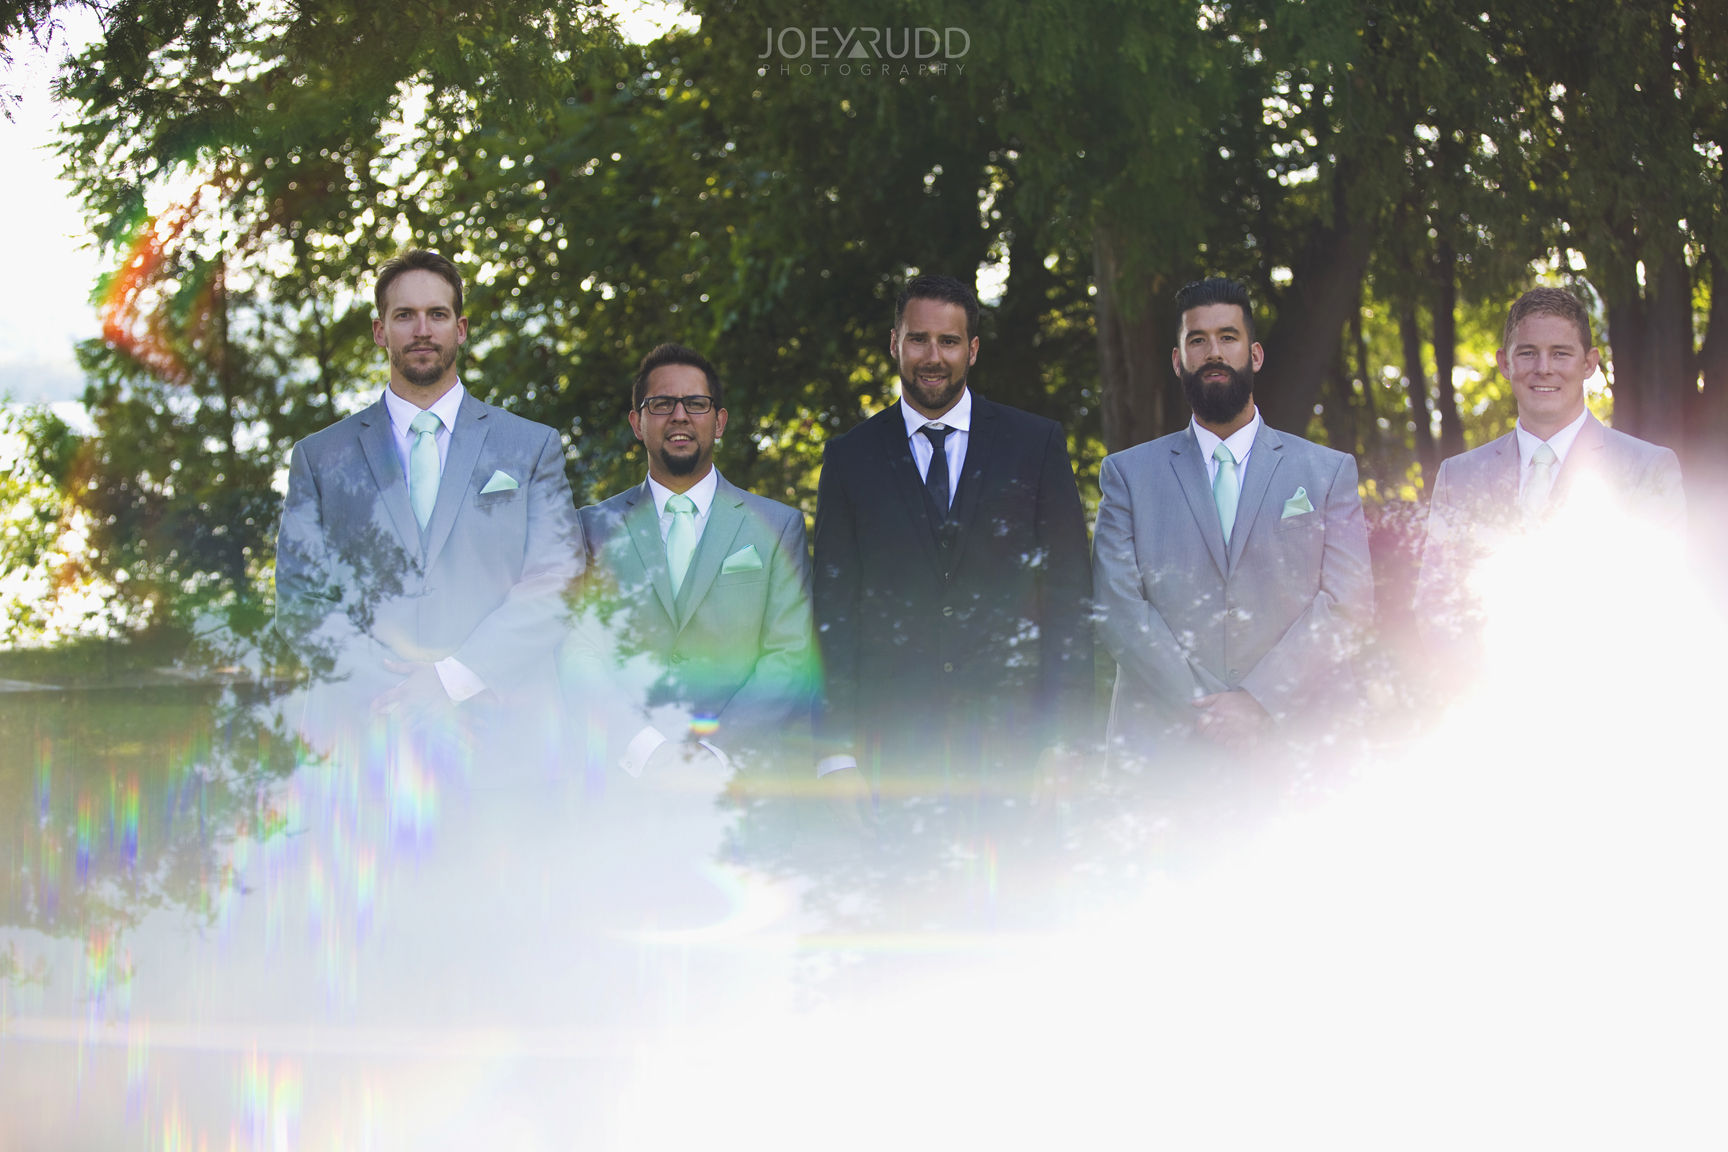 Calabogie Wedding at Barnet Park by Ottawa Wedding Photographer Joey Rudd Photography Wedding Party Groomsmen Prisming